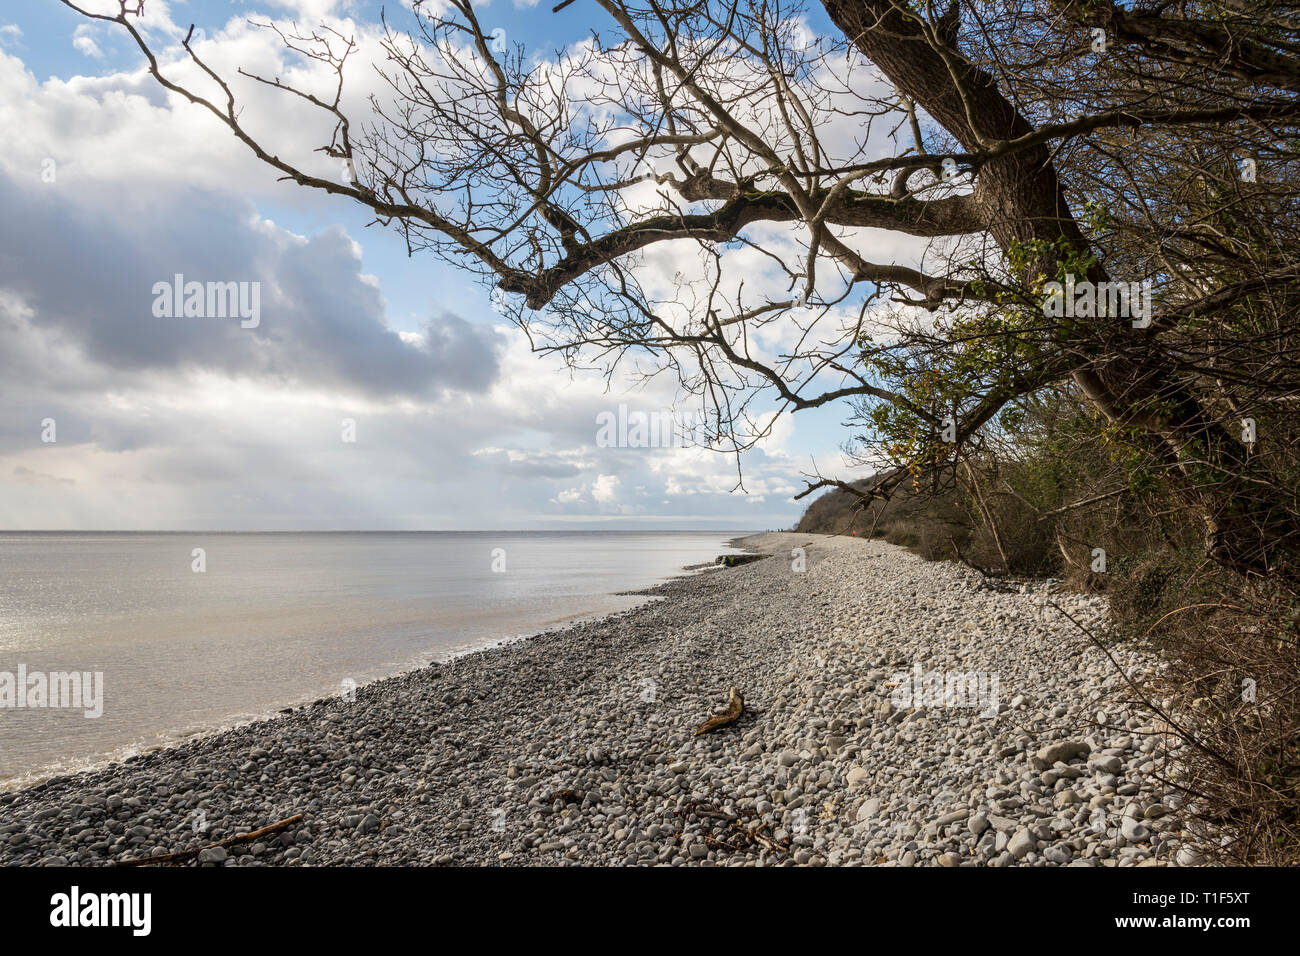 Sun shines from between clouds onto the long, quiet, pebble beach, backed by bare trees, at Porthkerry, Barry, South Wales - Stock Image